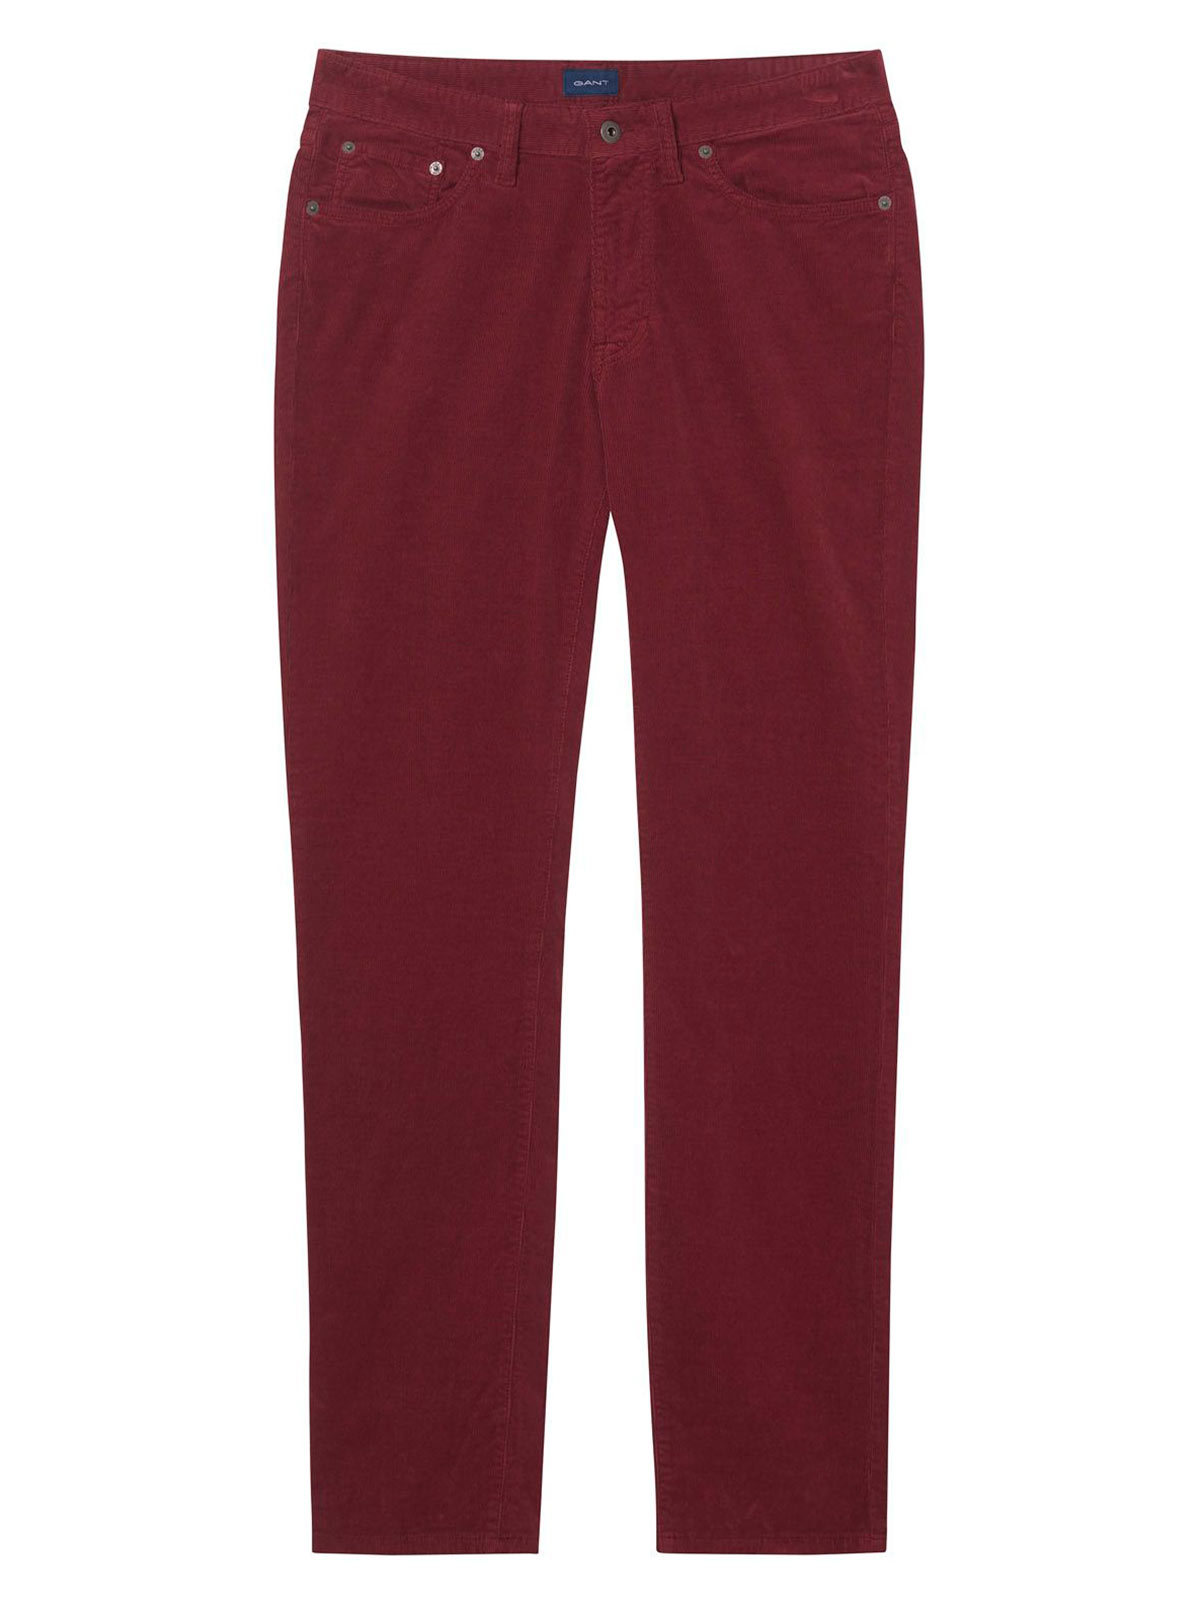 Picture of GANT | Men's Cord Slacks